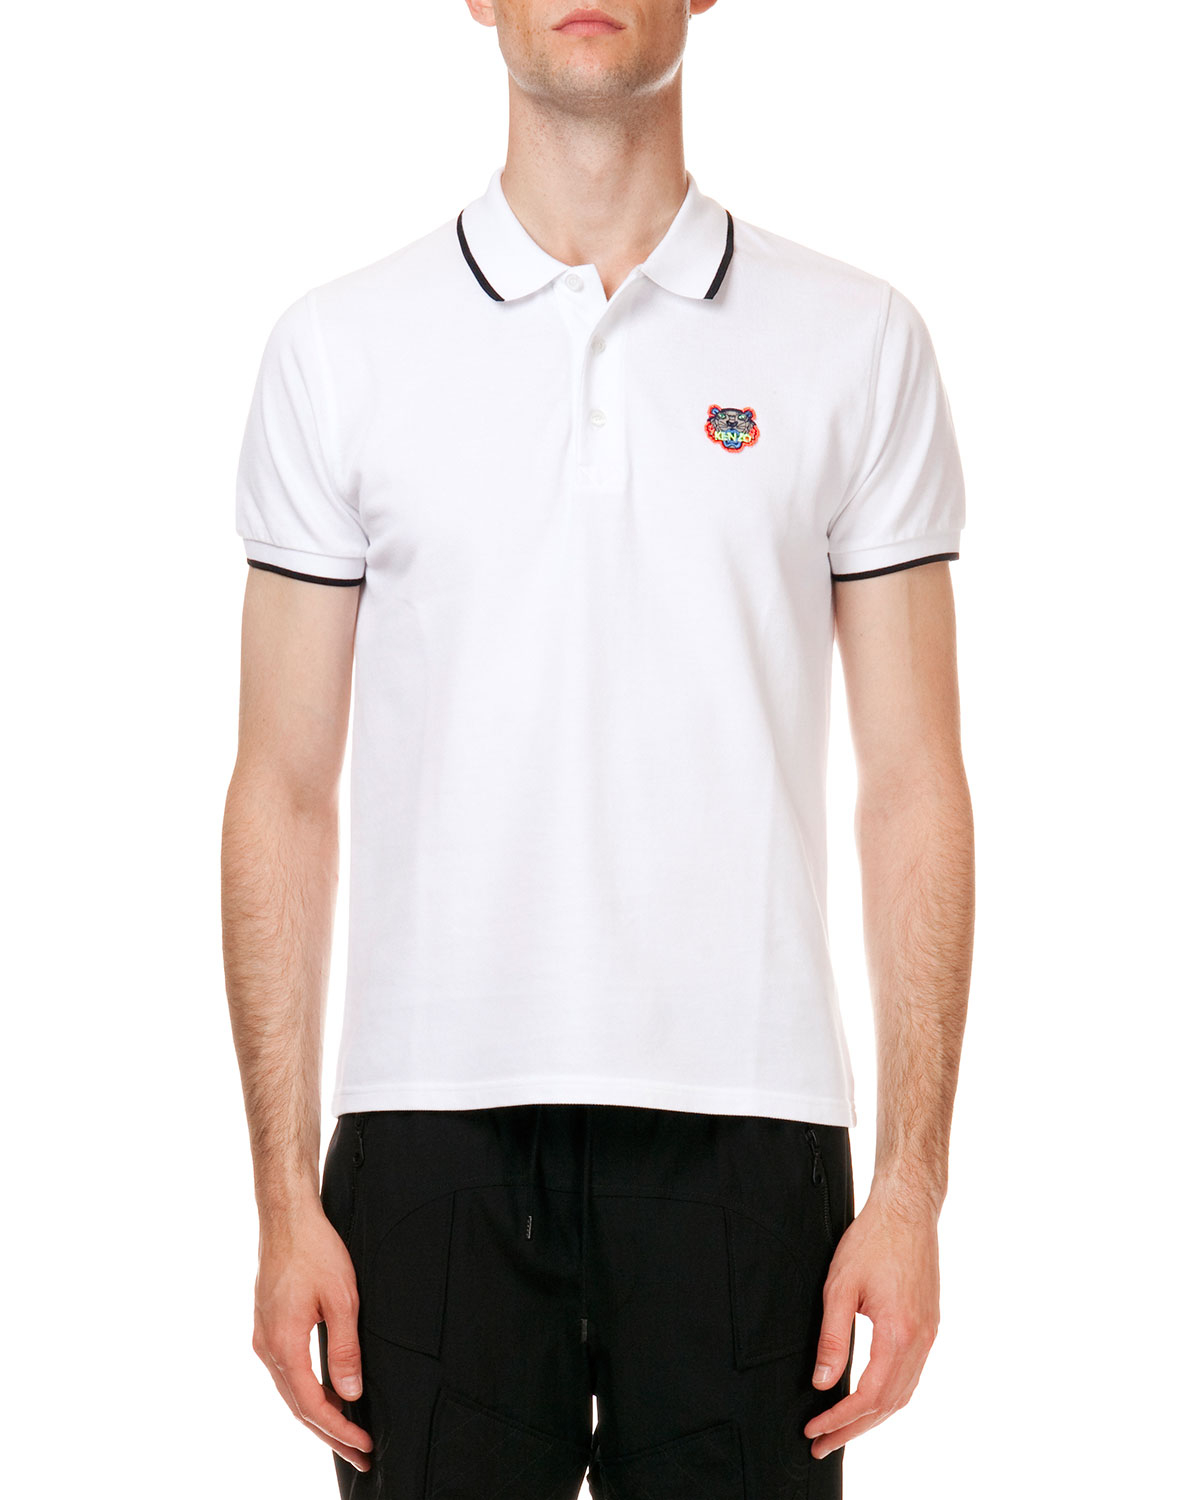 5476a073a1 KENZO Tipped Tiger Short Sleeve Pique Polo in White for Men - Lyst